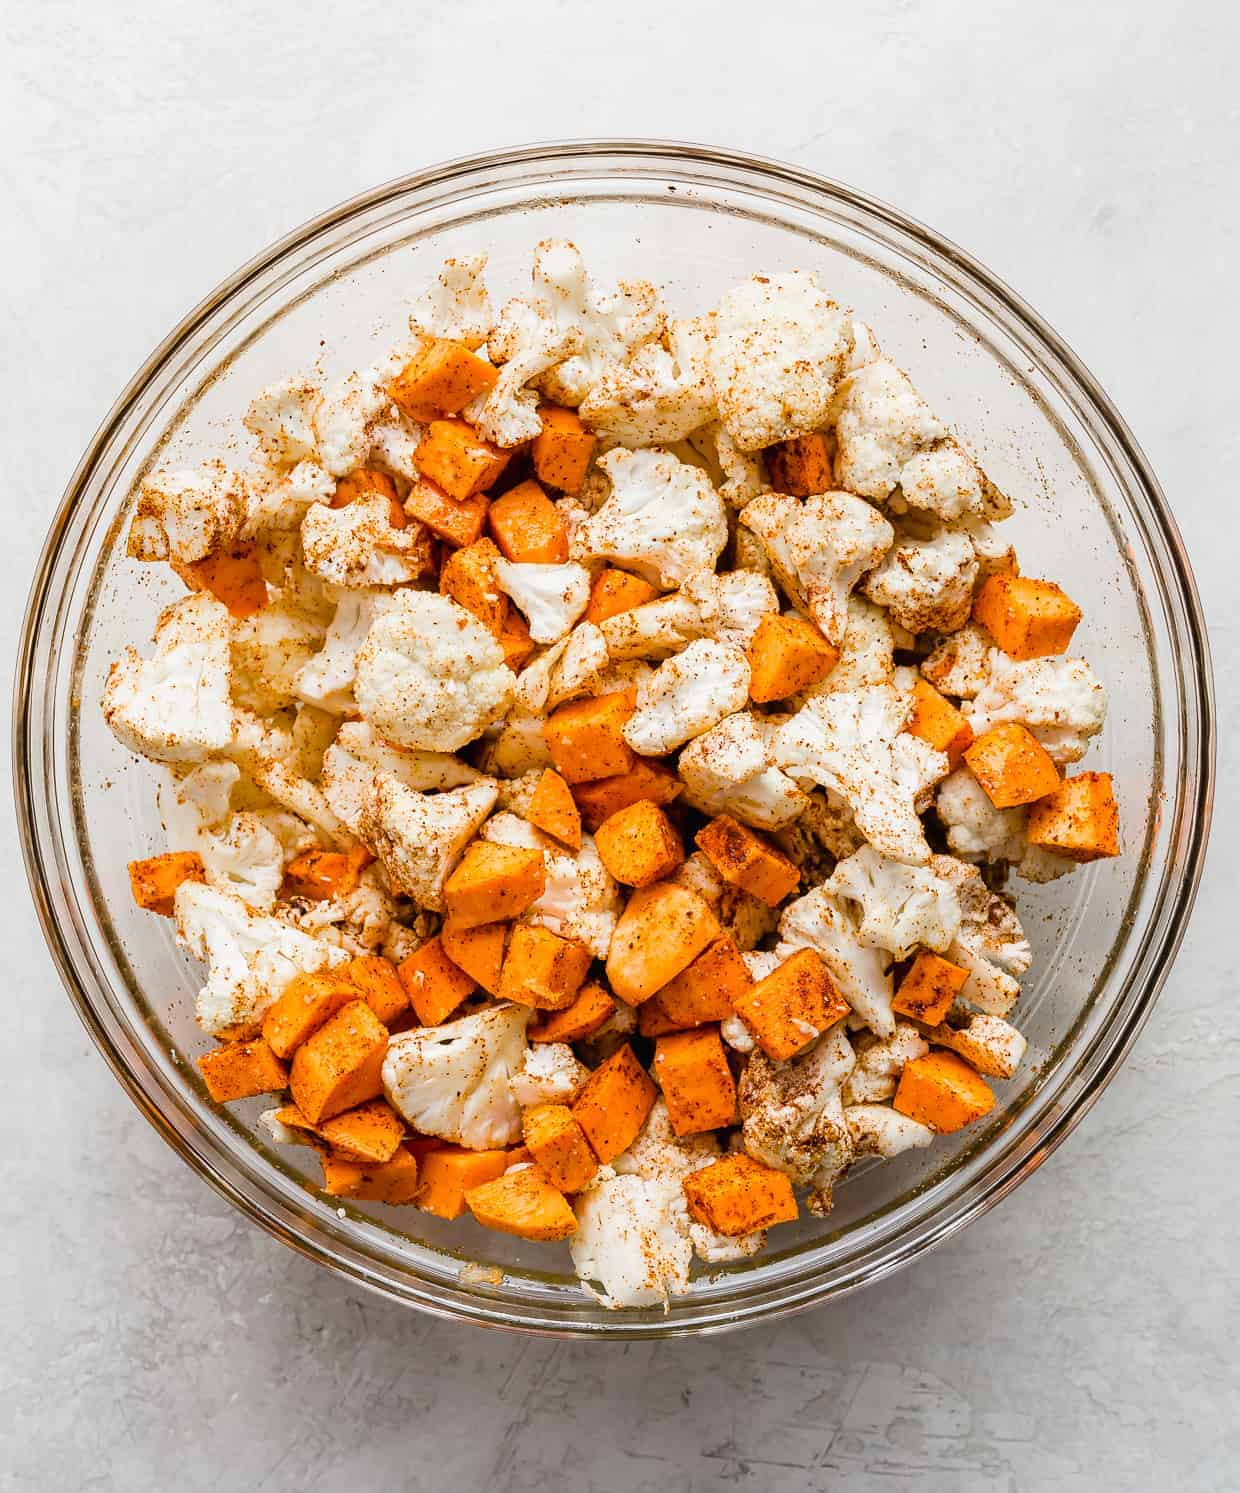 A glass bowl with chopped cauliflower and sweet potatoes in it.